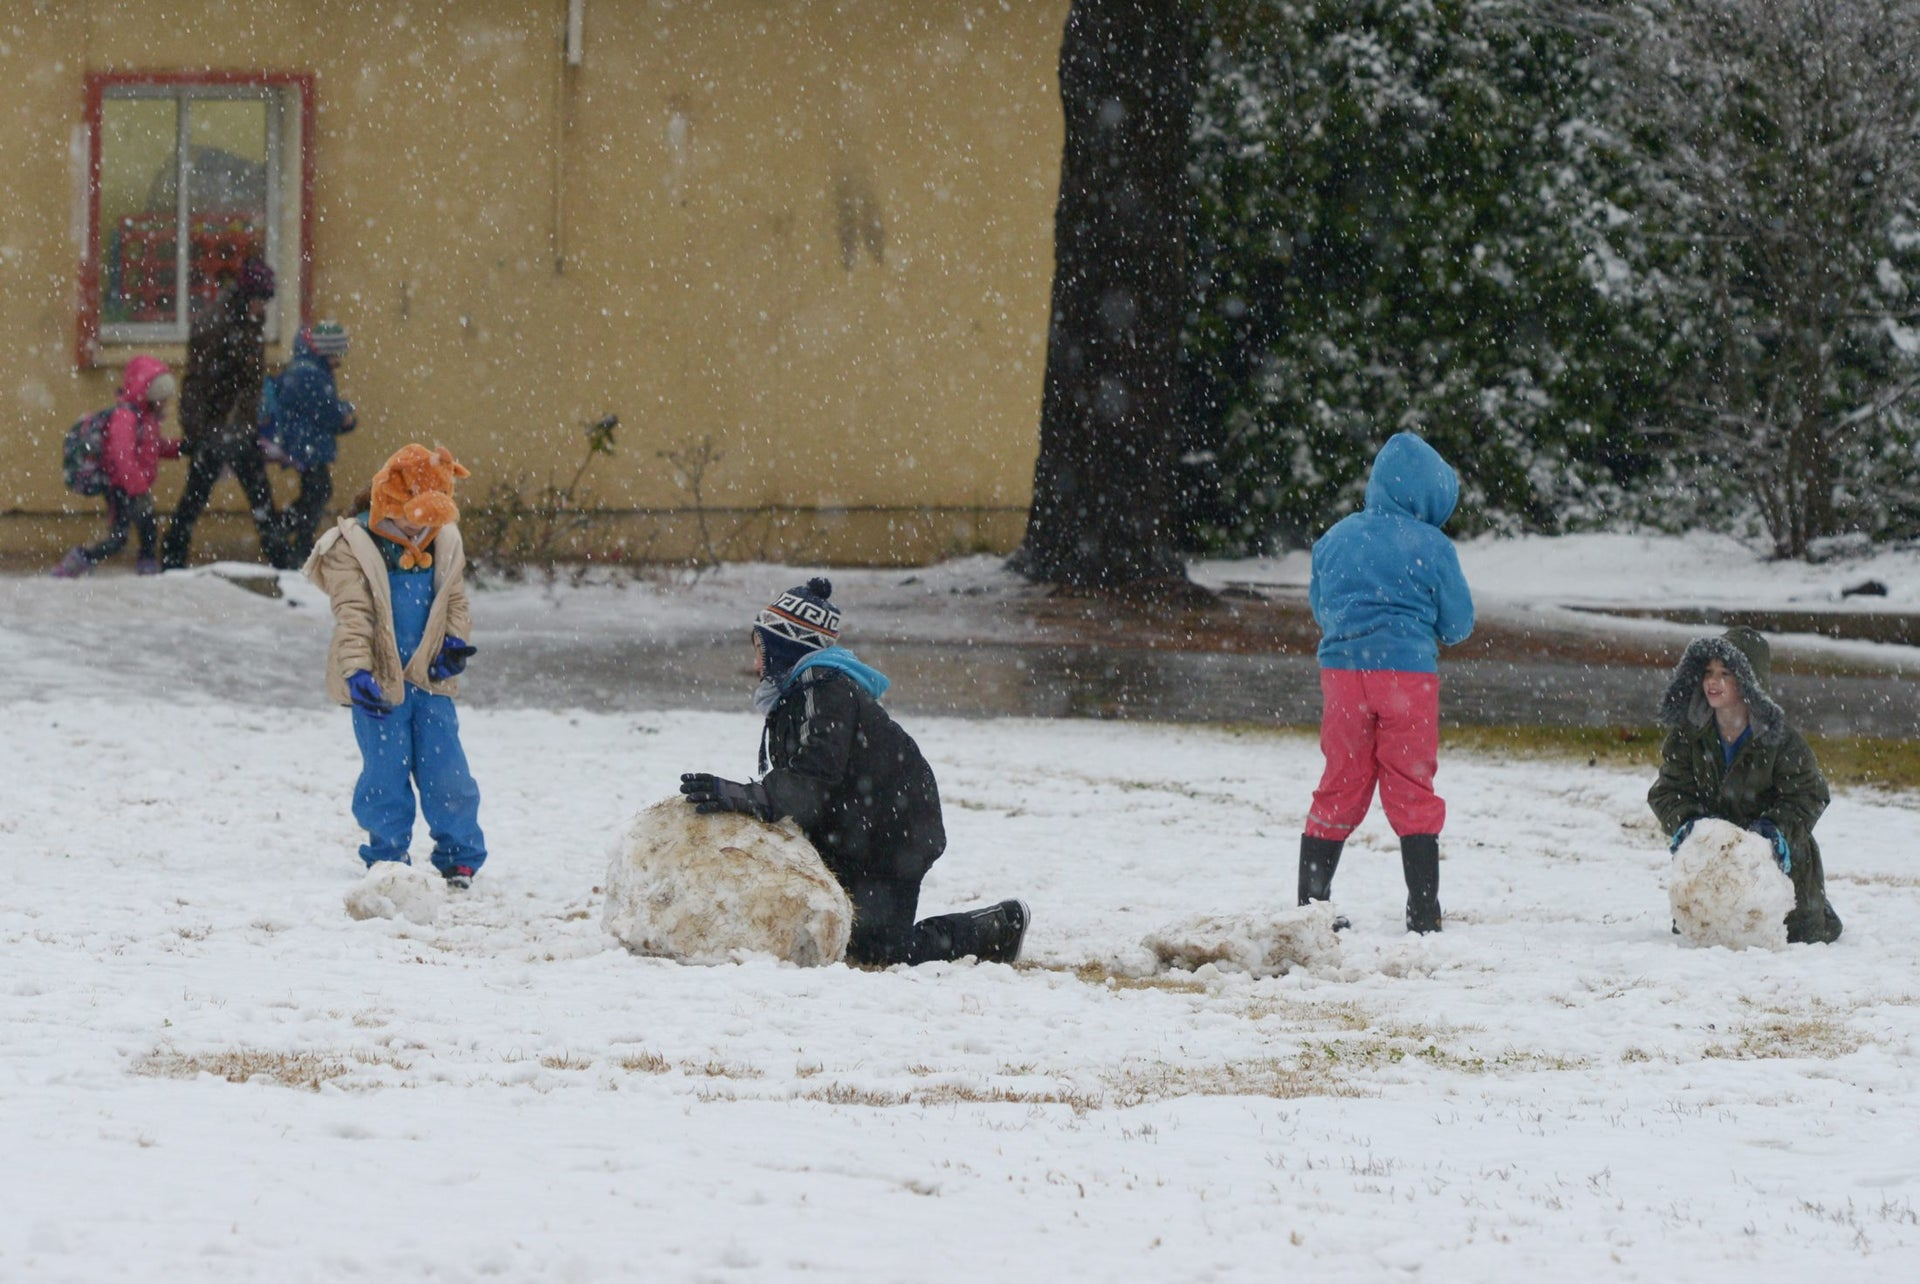 Children play in the snow in Kibbutz Merom Golan, January 9, 2017.